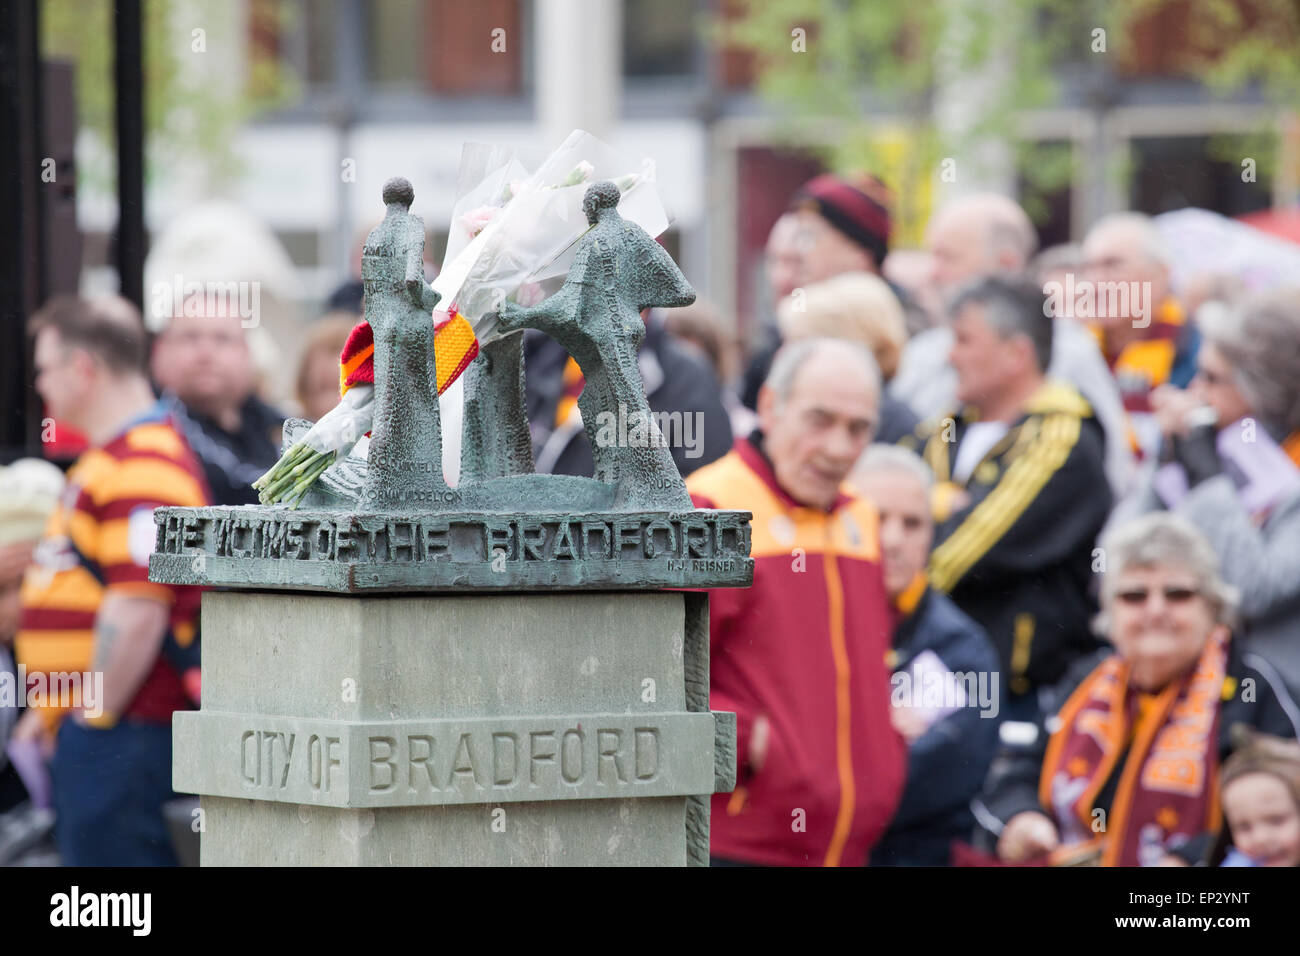 The memorial to those lost in the Bradford City fire disaster of 1986, seen during the memorial service in 2013. - Stock Image